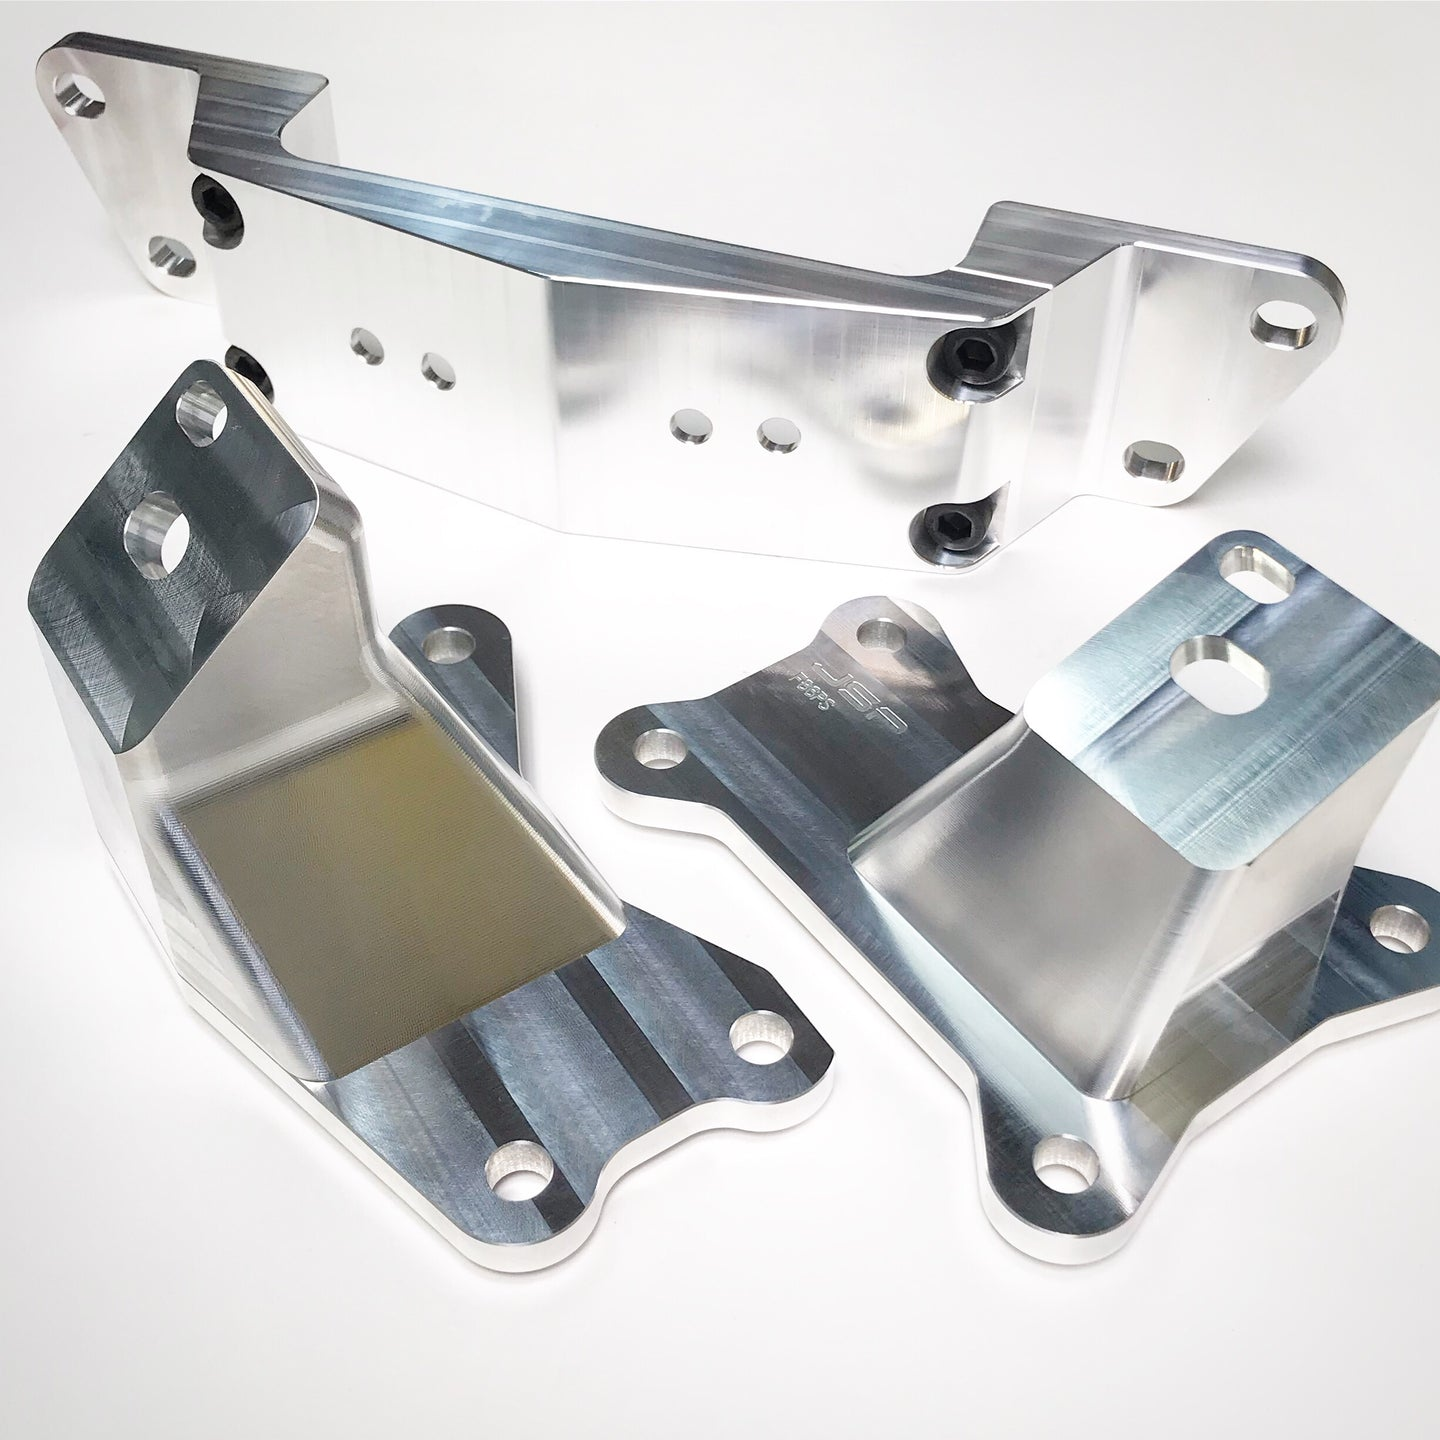 JSP billet AE86 S2000 f20c mount set